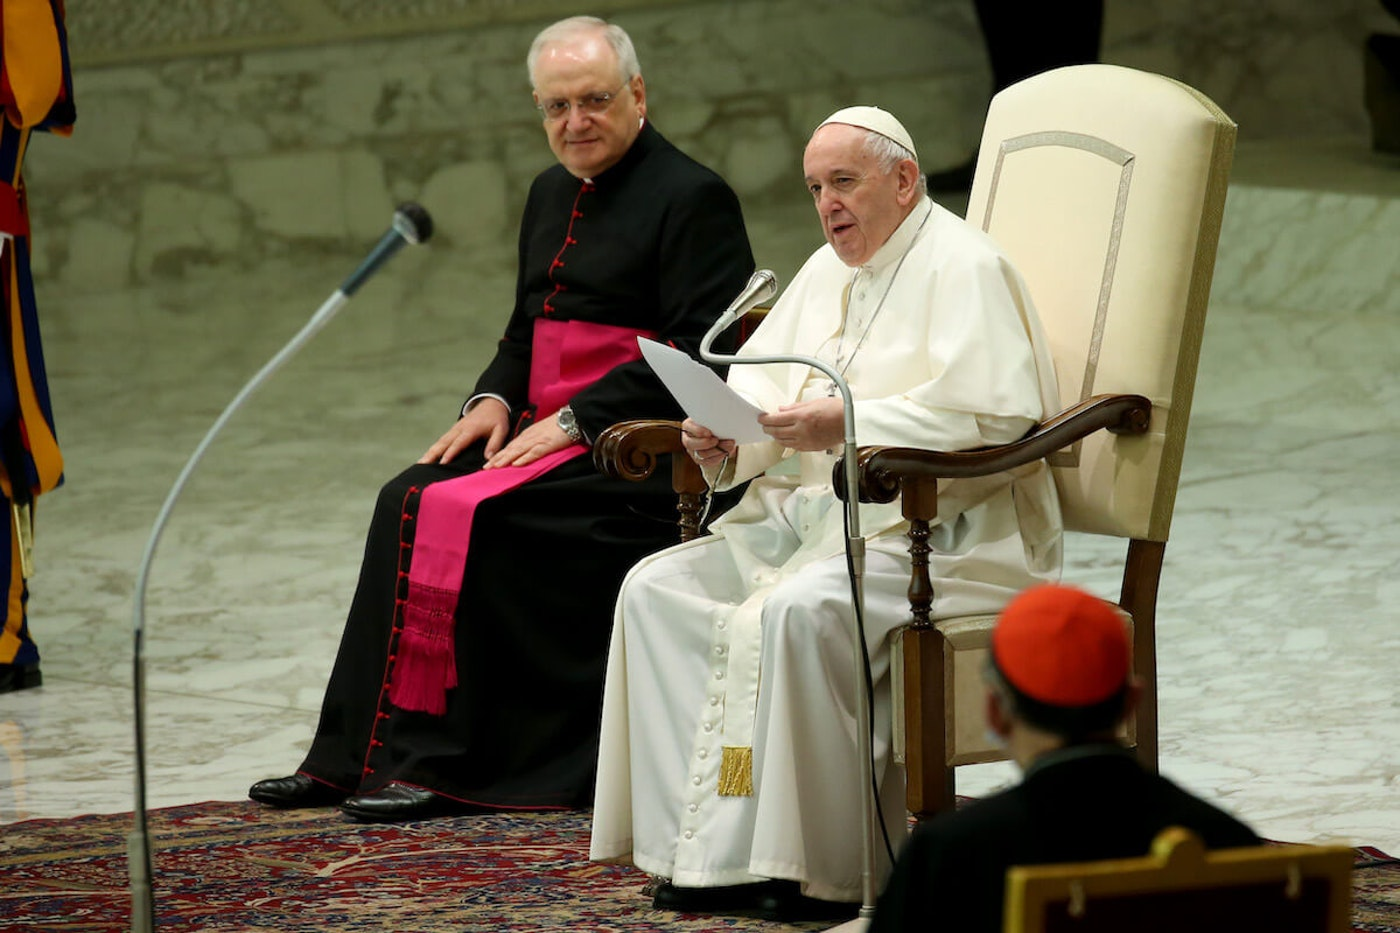 Pope Francis Oct. 21, 2020